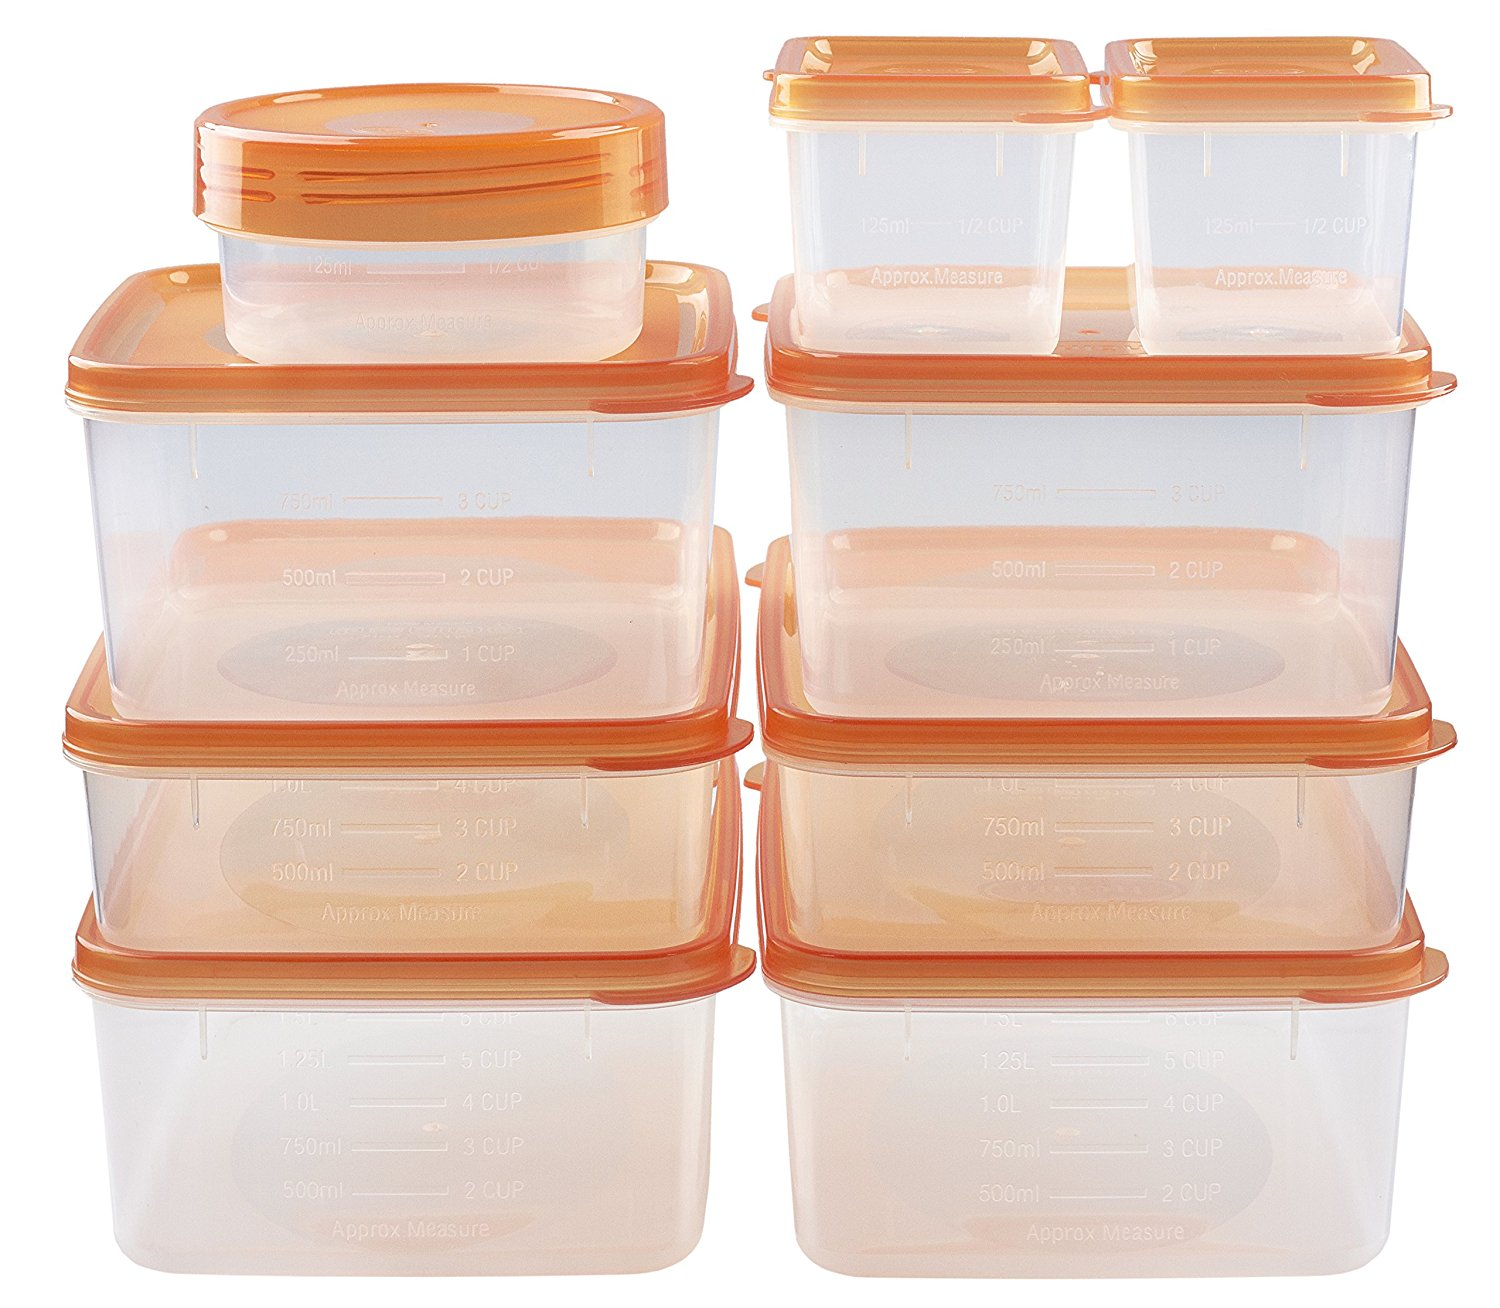 Superbe Holm BPA Free Reusable Square Food Storage Containers With Lids (Orange)  Leak Proof   Great For Meal Prep, Baby Or Gourmet Foods   9 PCS Set    Walmart.com